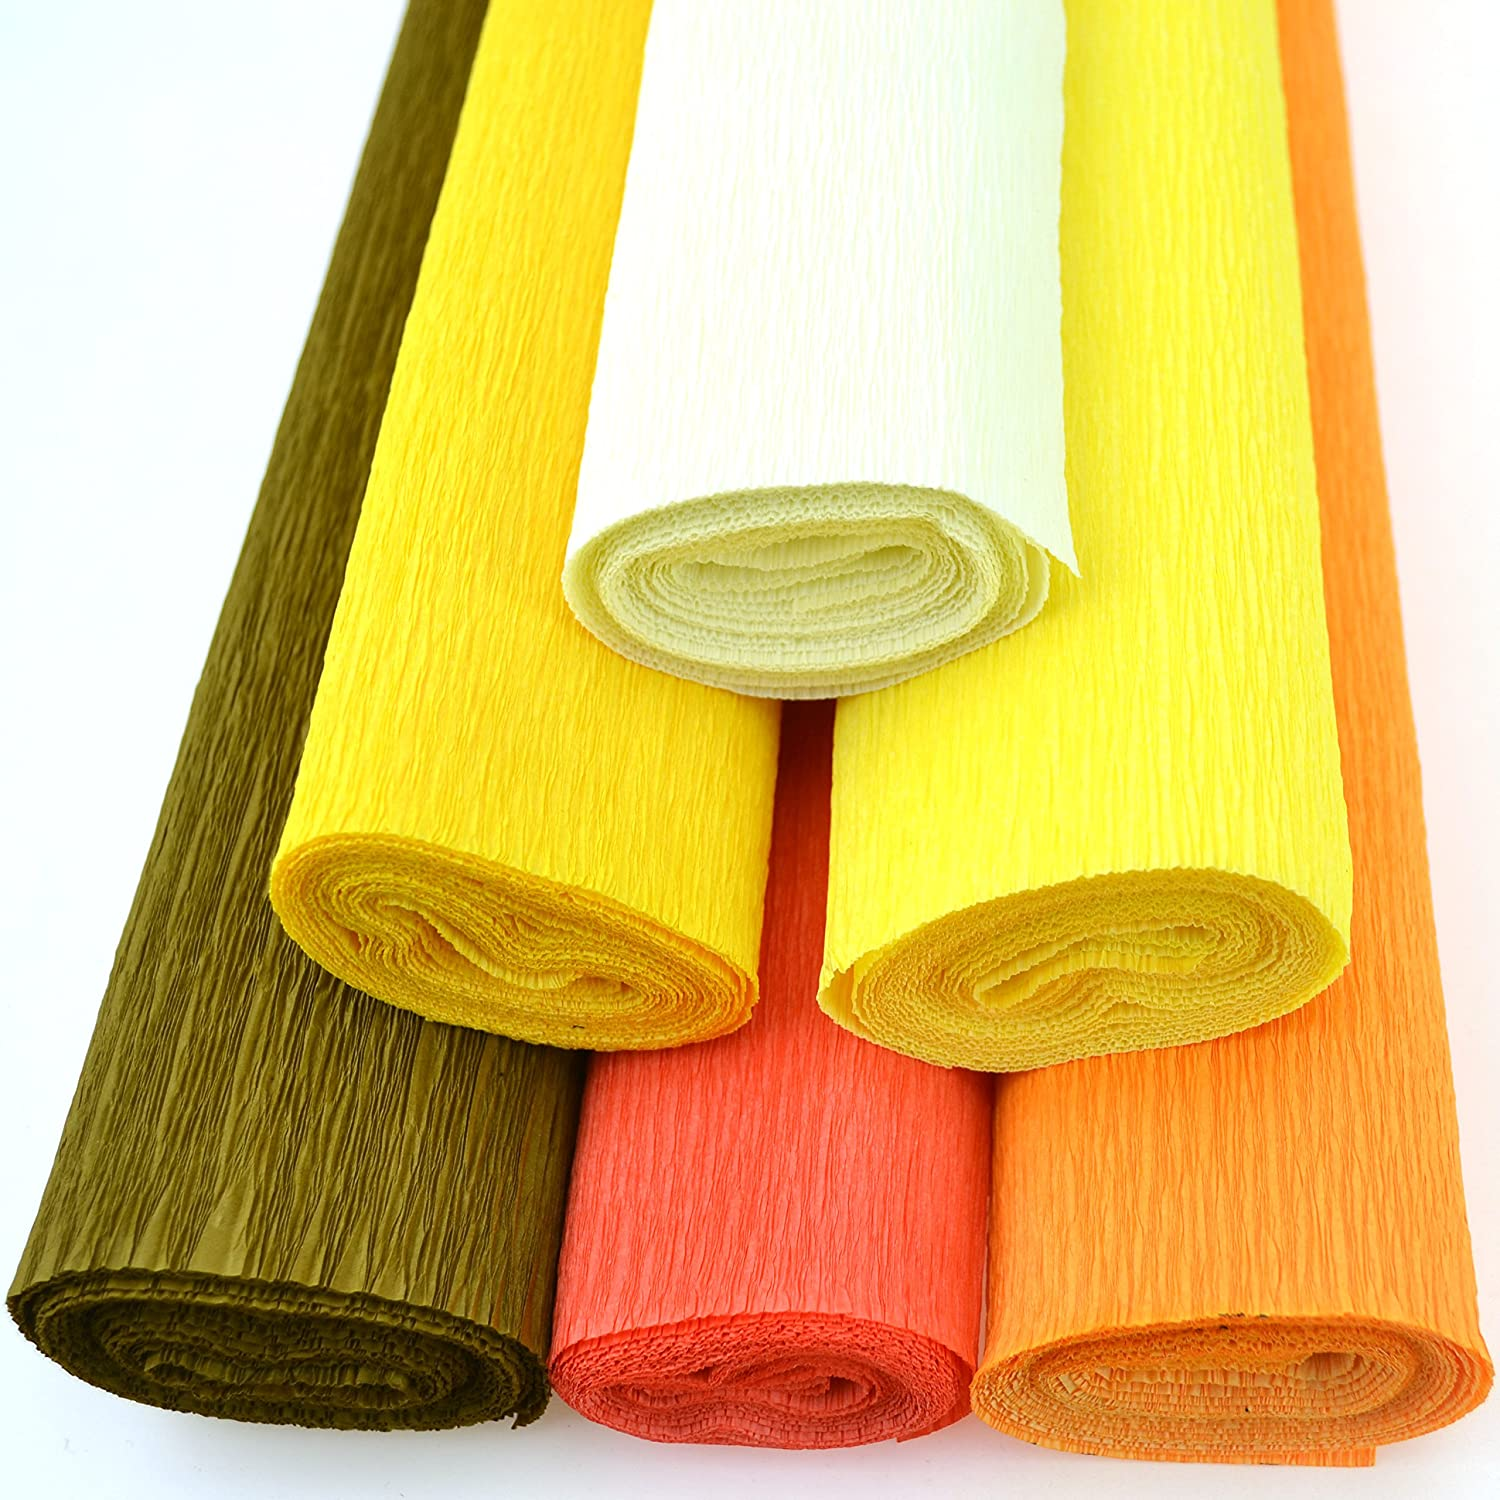 Orange Crepe Paper Roll 20 Inches Wide x 8ft Long